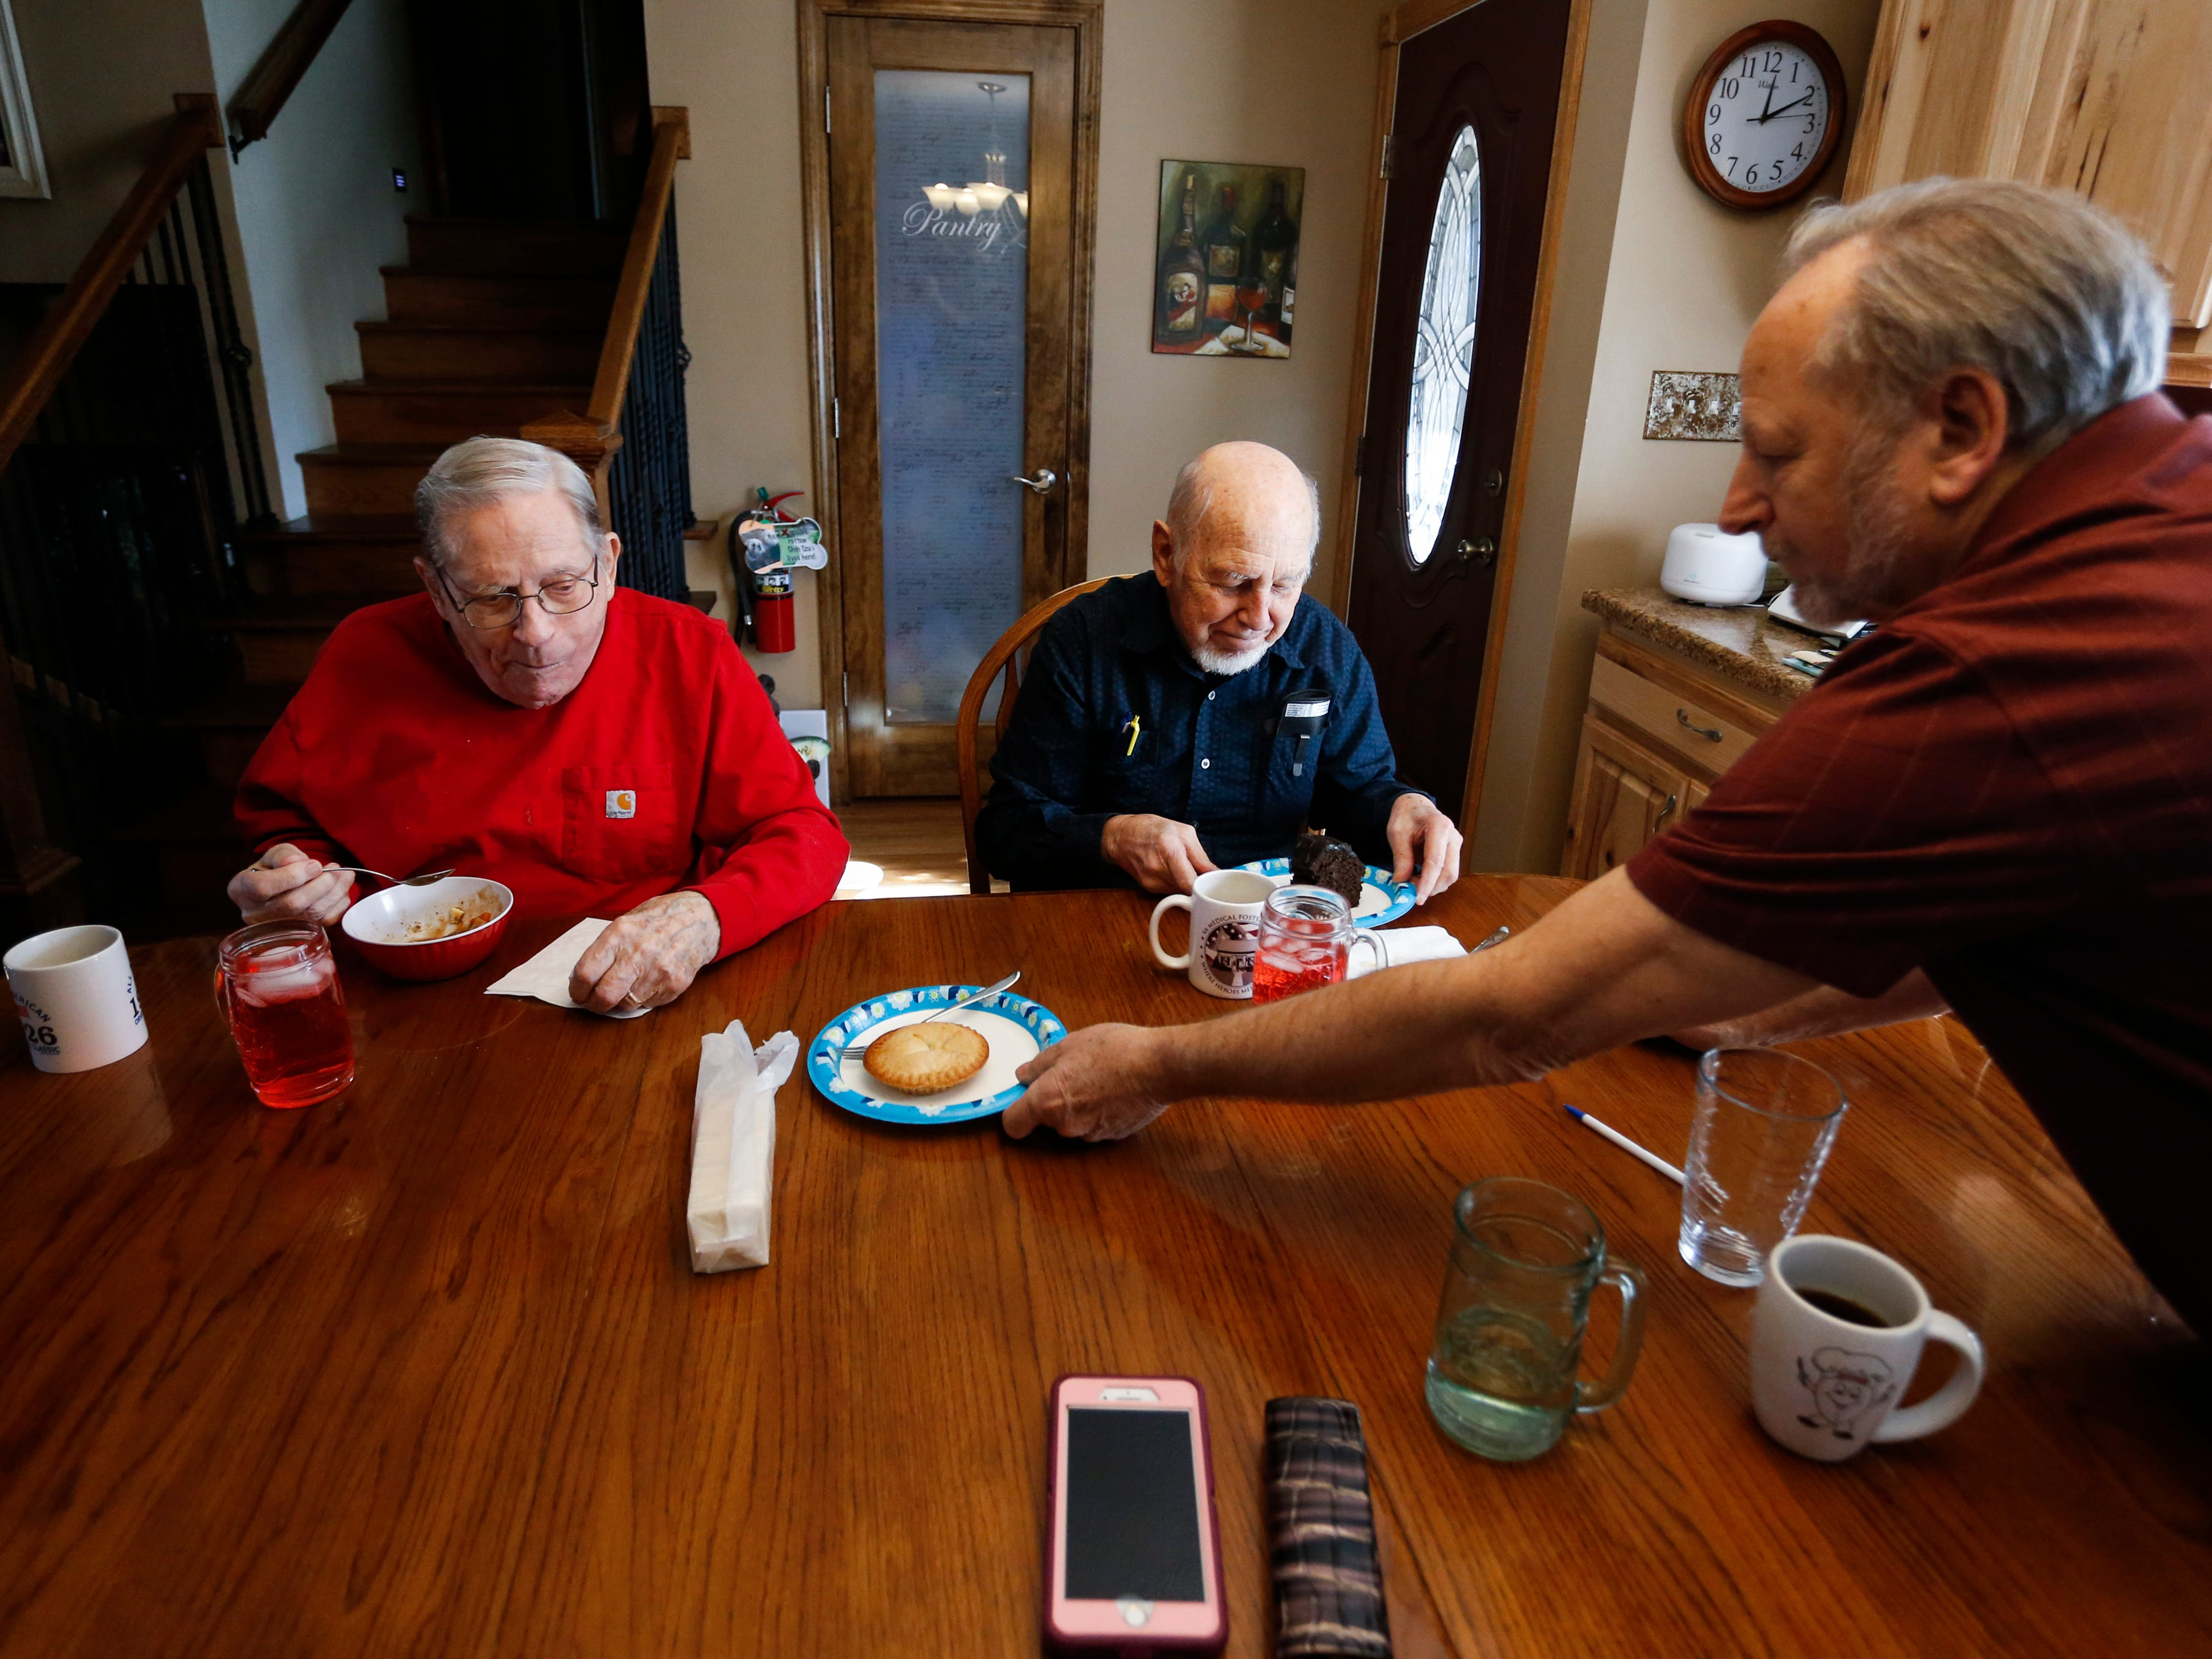 Frank Keim brings dessert to veterans Donald Gundlach (left), 92, and Gene Solomon, 77, on Tuesday, Jan. 29, 2019. Keim and his wife opened up their home to veterans as part of the VA's Medical Foster Home Program.